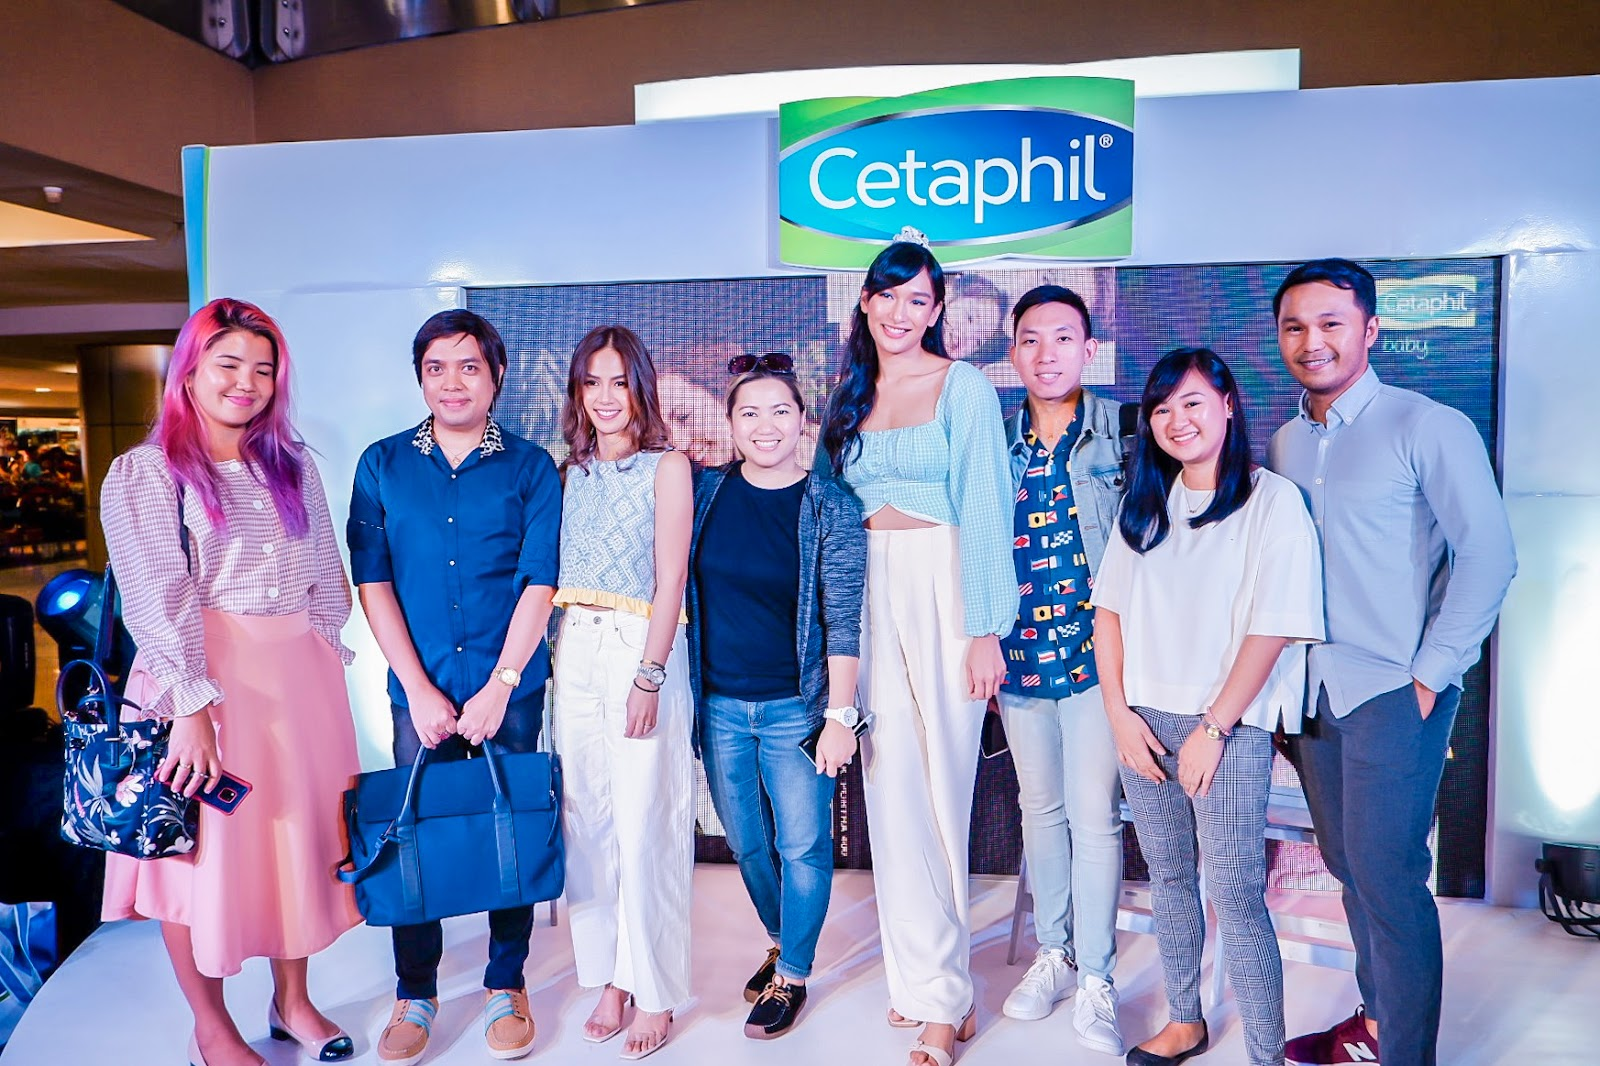 Cetaphil National Healthy Skin Mission: Skin Care is Self Care